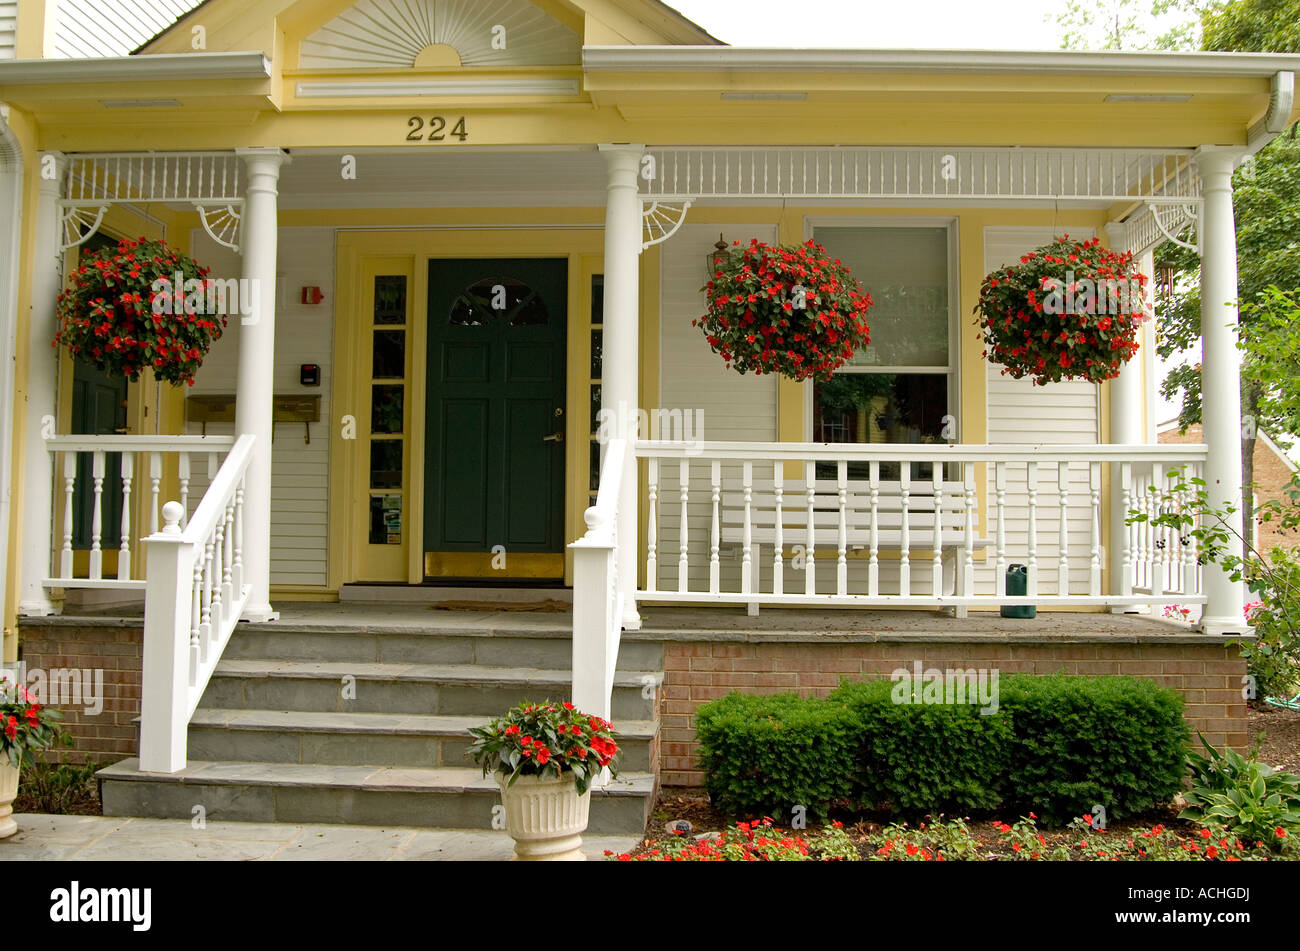 Victorian front porch with potted hanging plants